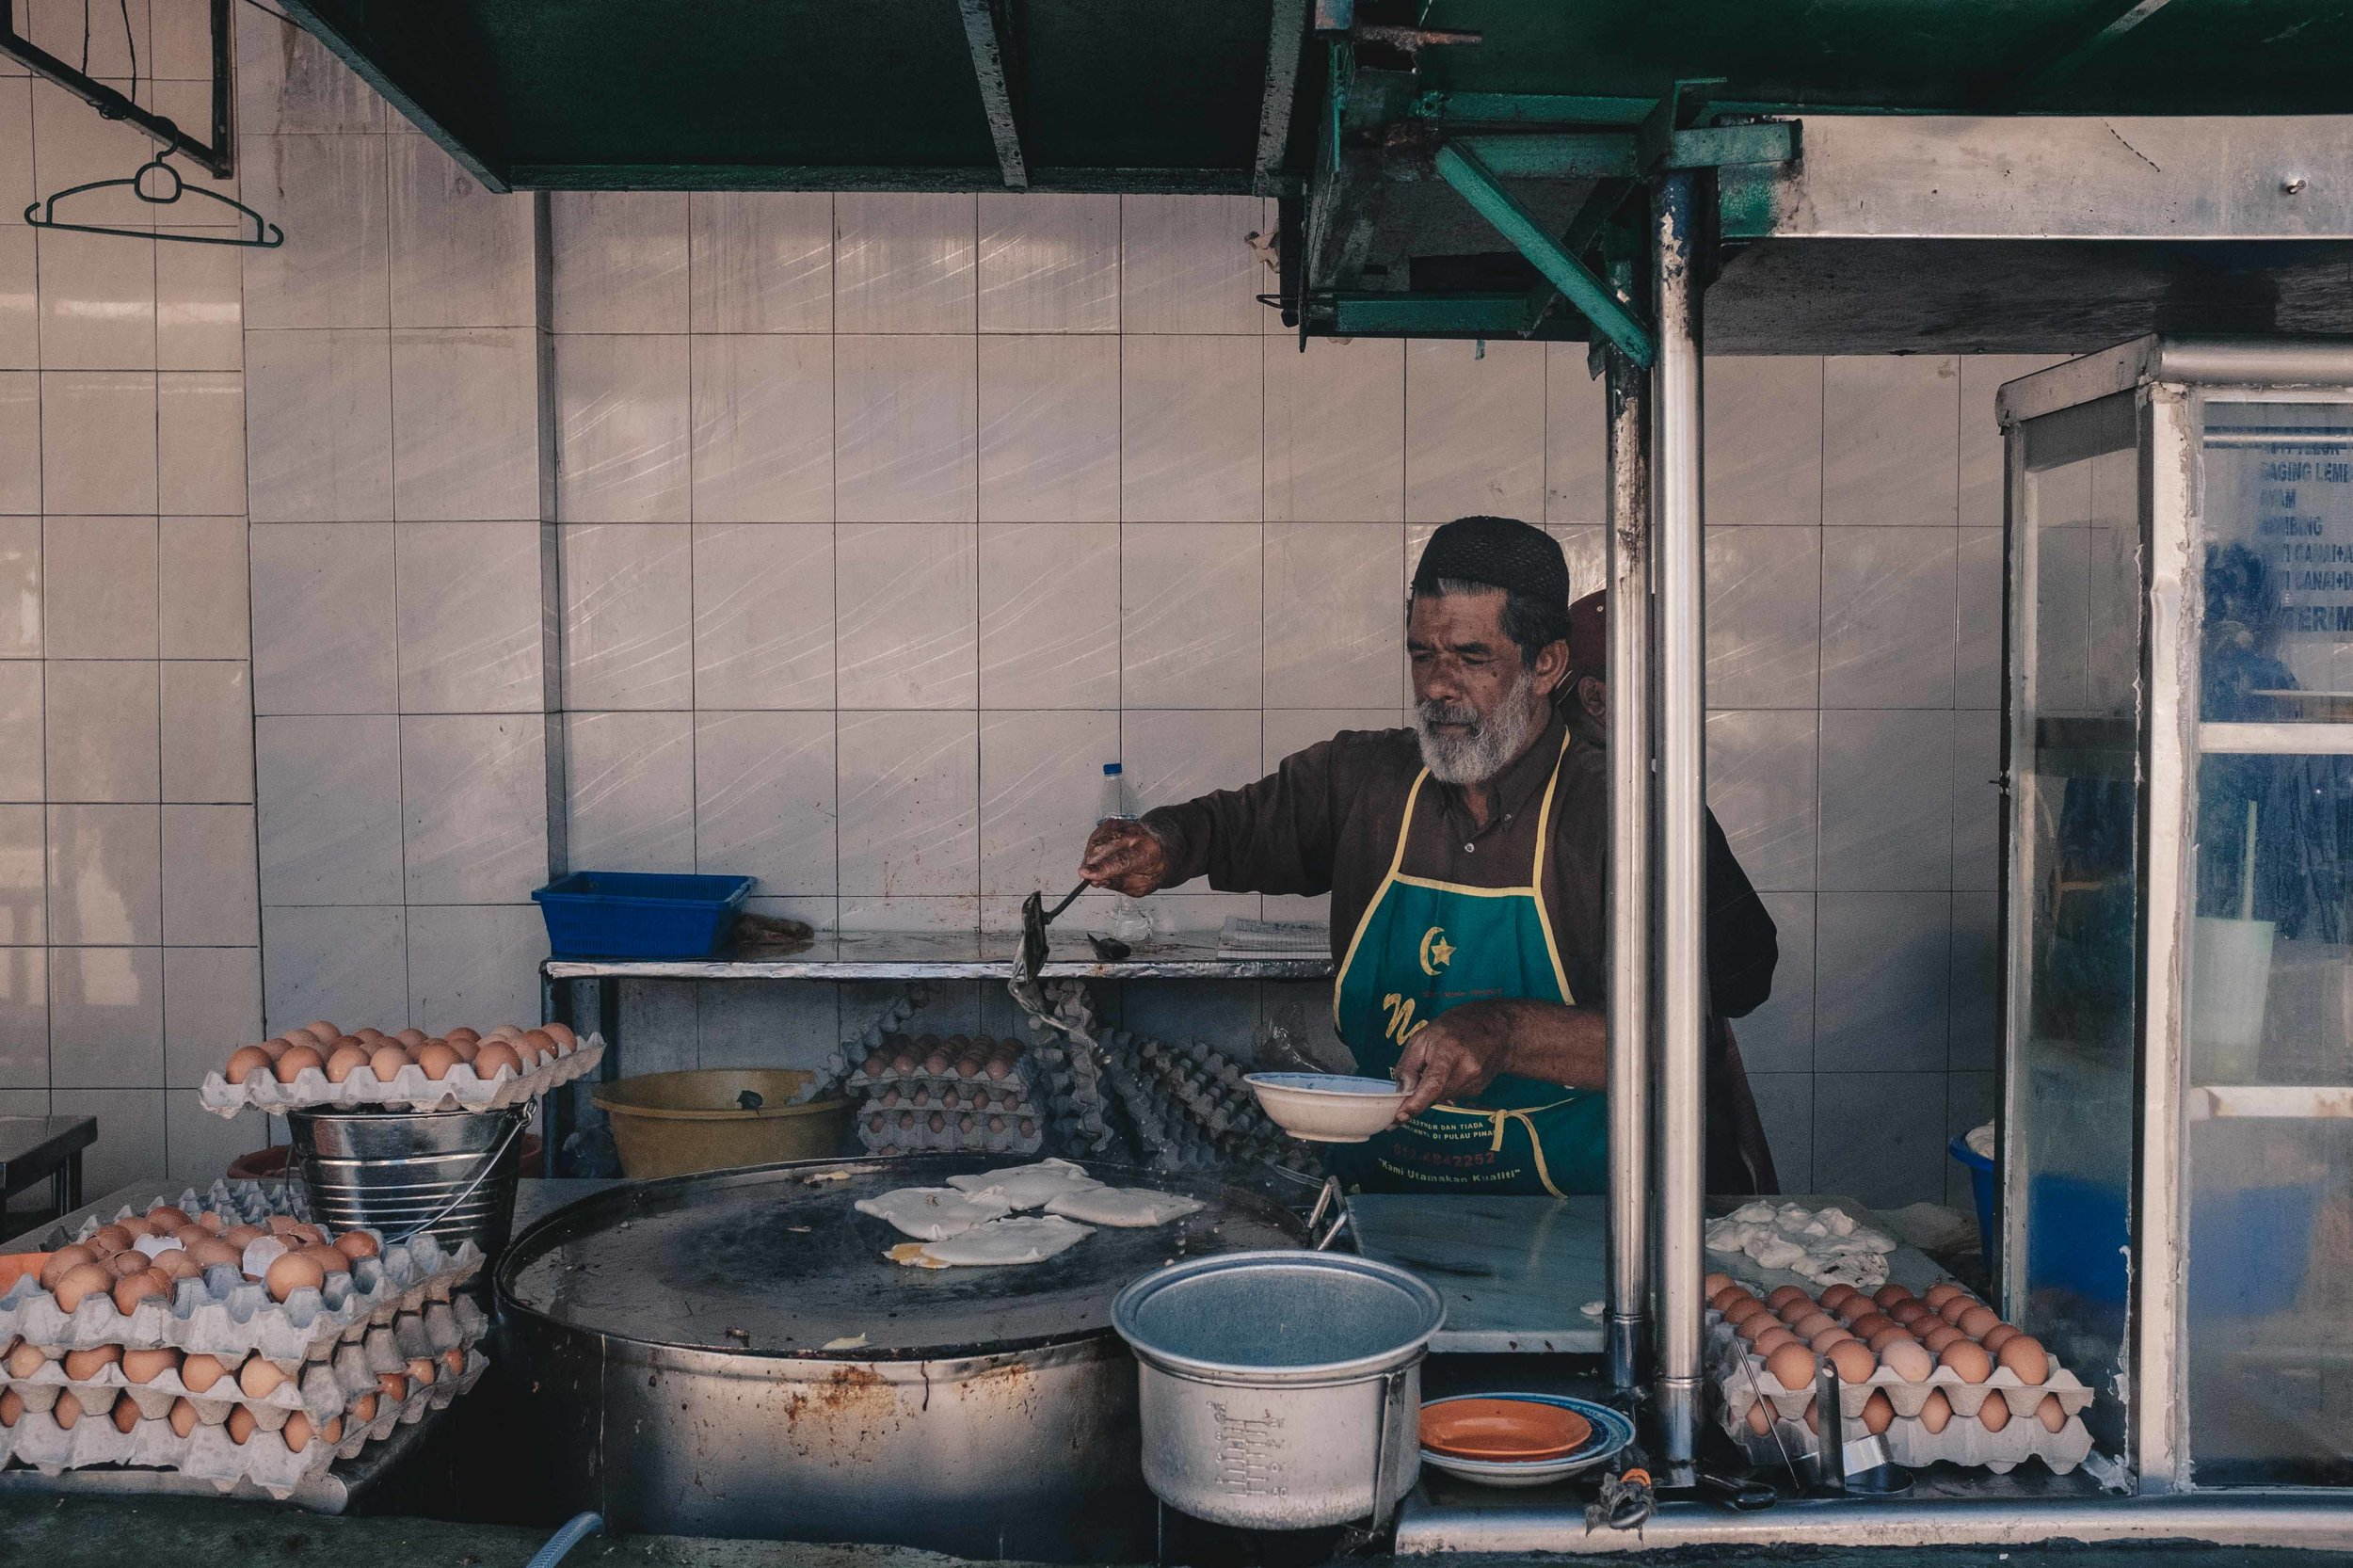 The legendary Roti Canai on Penang's Transfer Road is a must-visit